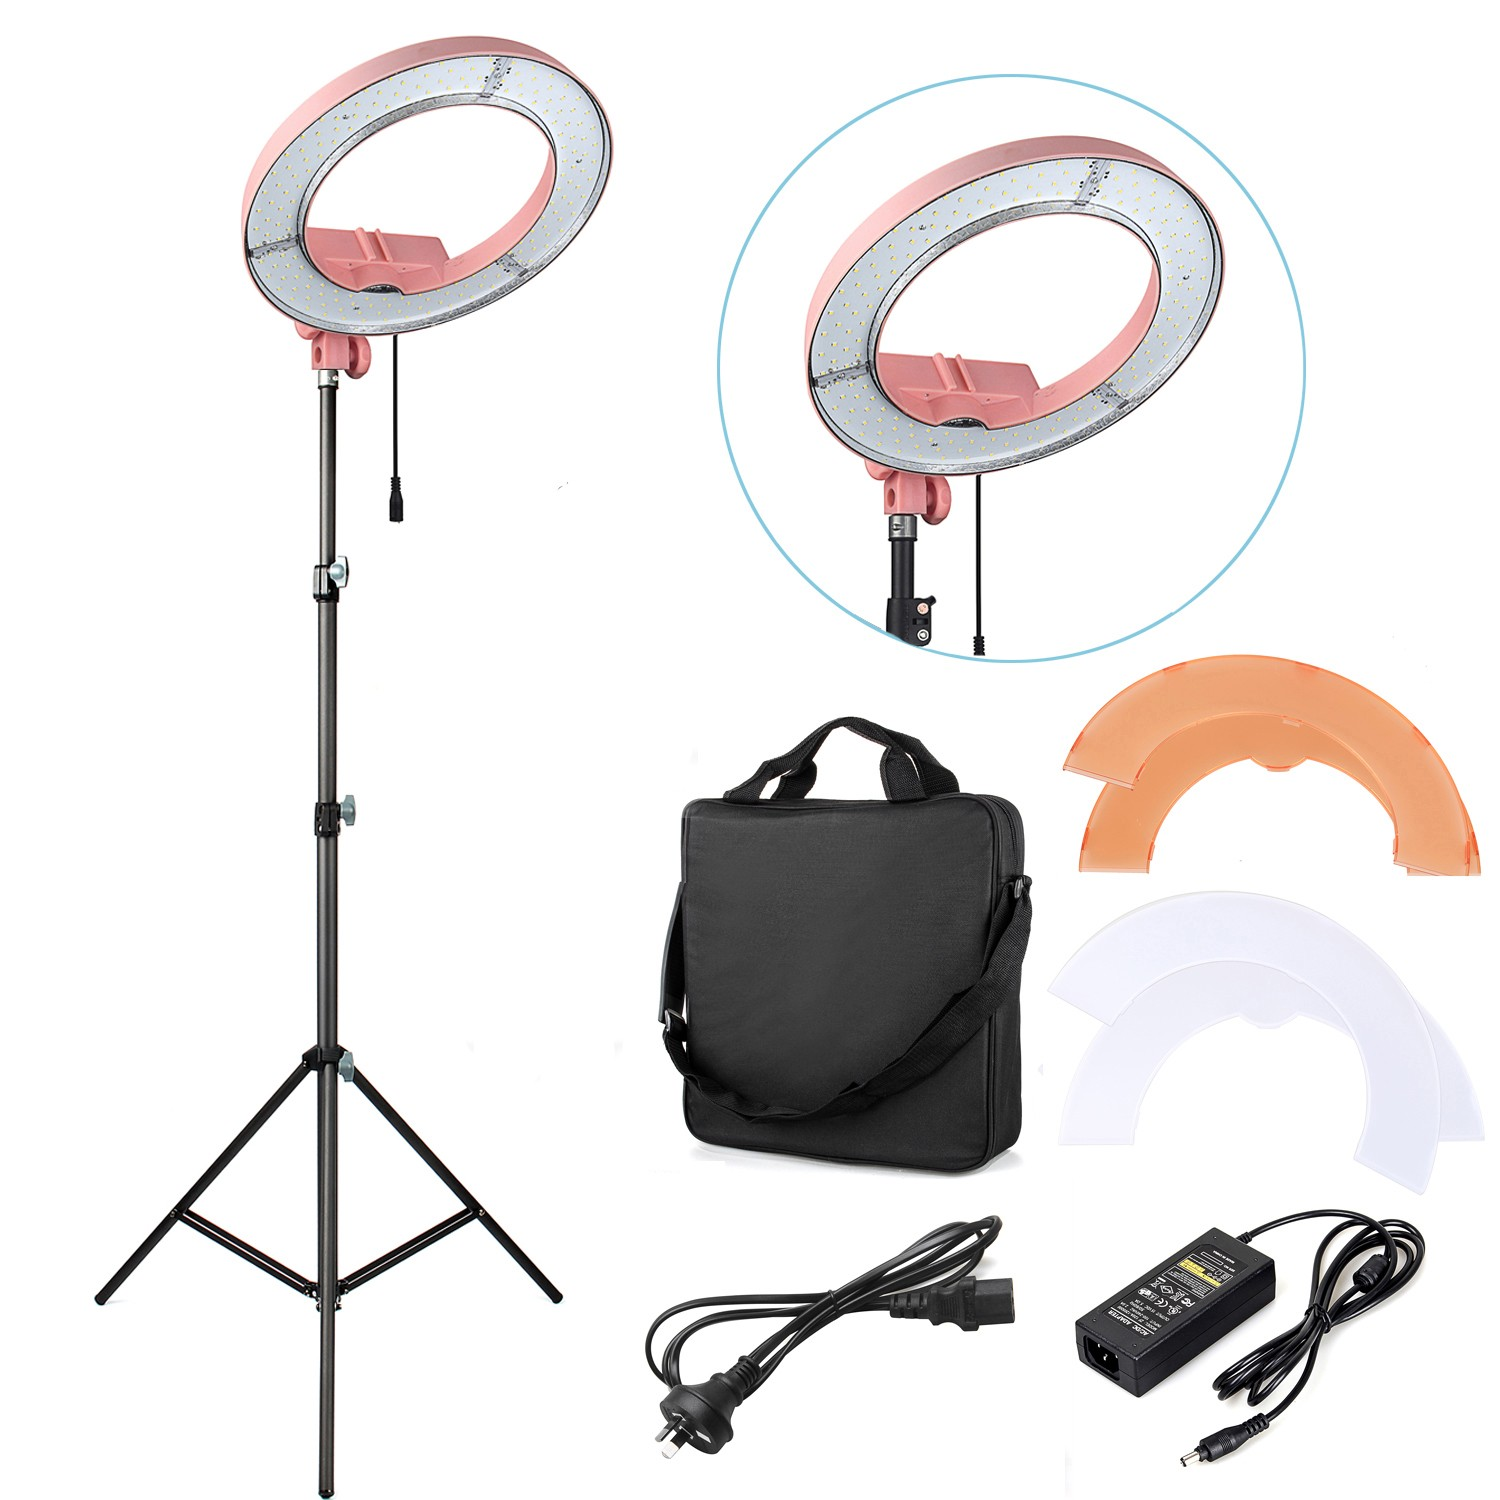 "Free ship ES180 12"" 5500K Dimmable 180 LED Stepless Adjustable Ring Light Camera Photo/Video Flashes Right Light For Phone Bags"